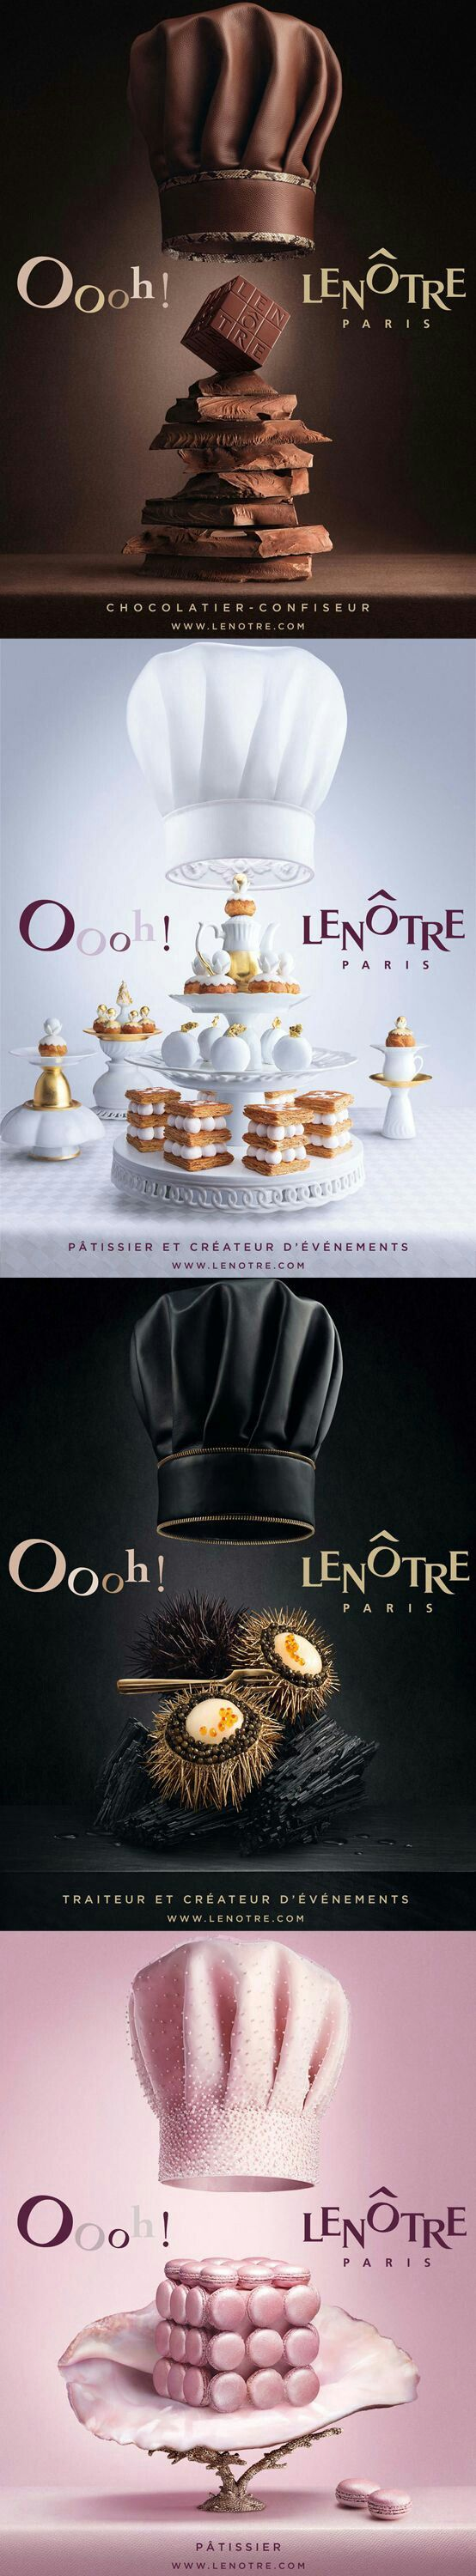 D ad poster design - 356 Best Ads Images On Pinterest Advertising Print Ads And Advertising Campaign